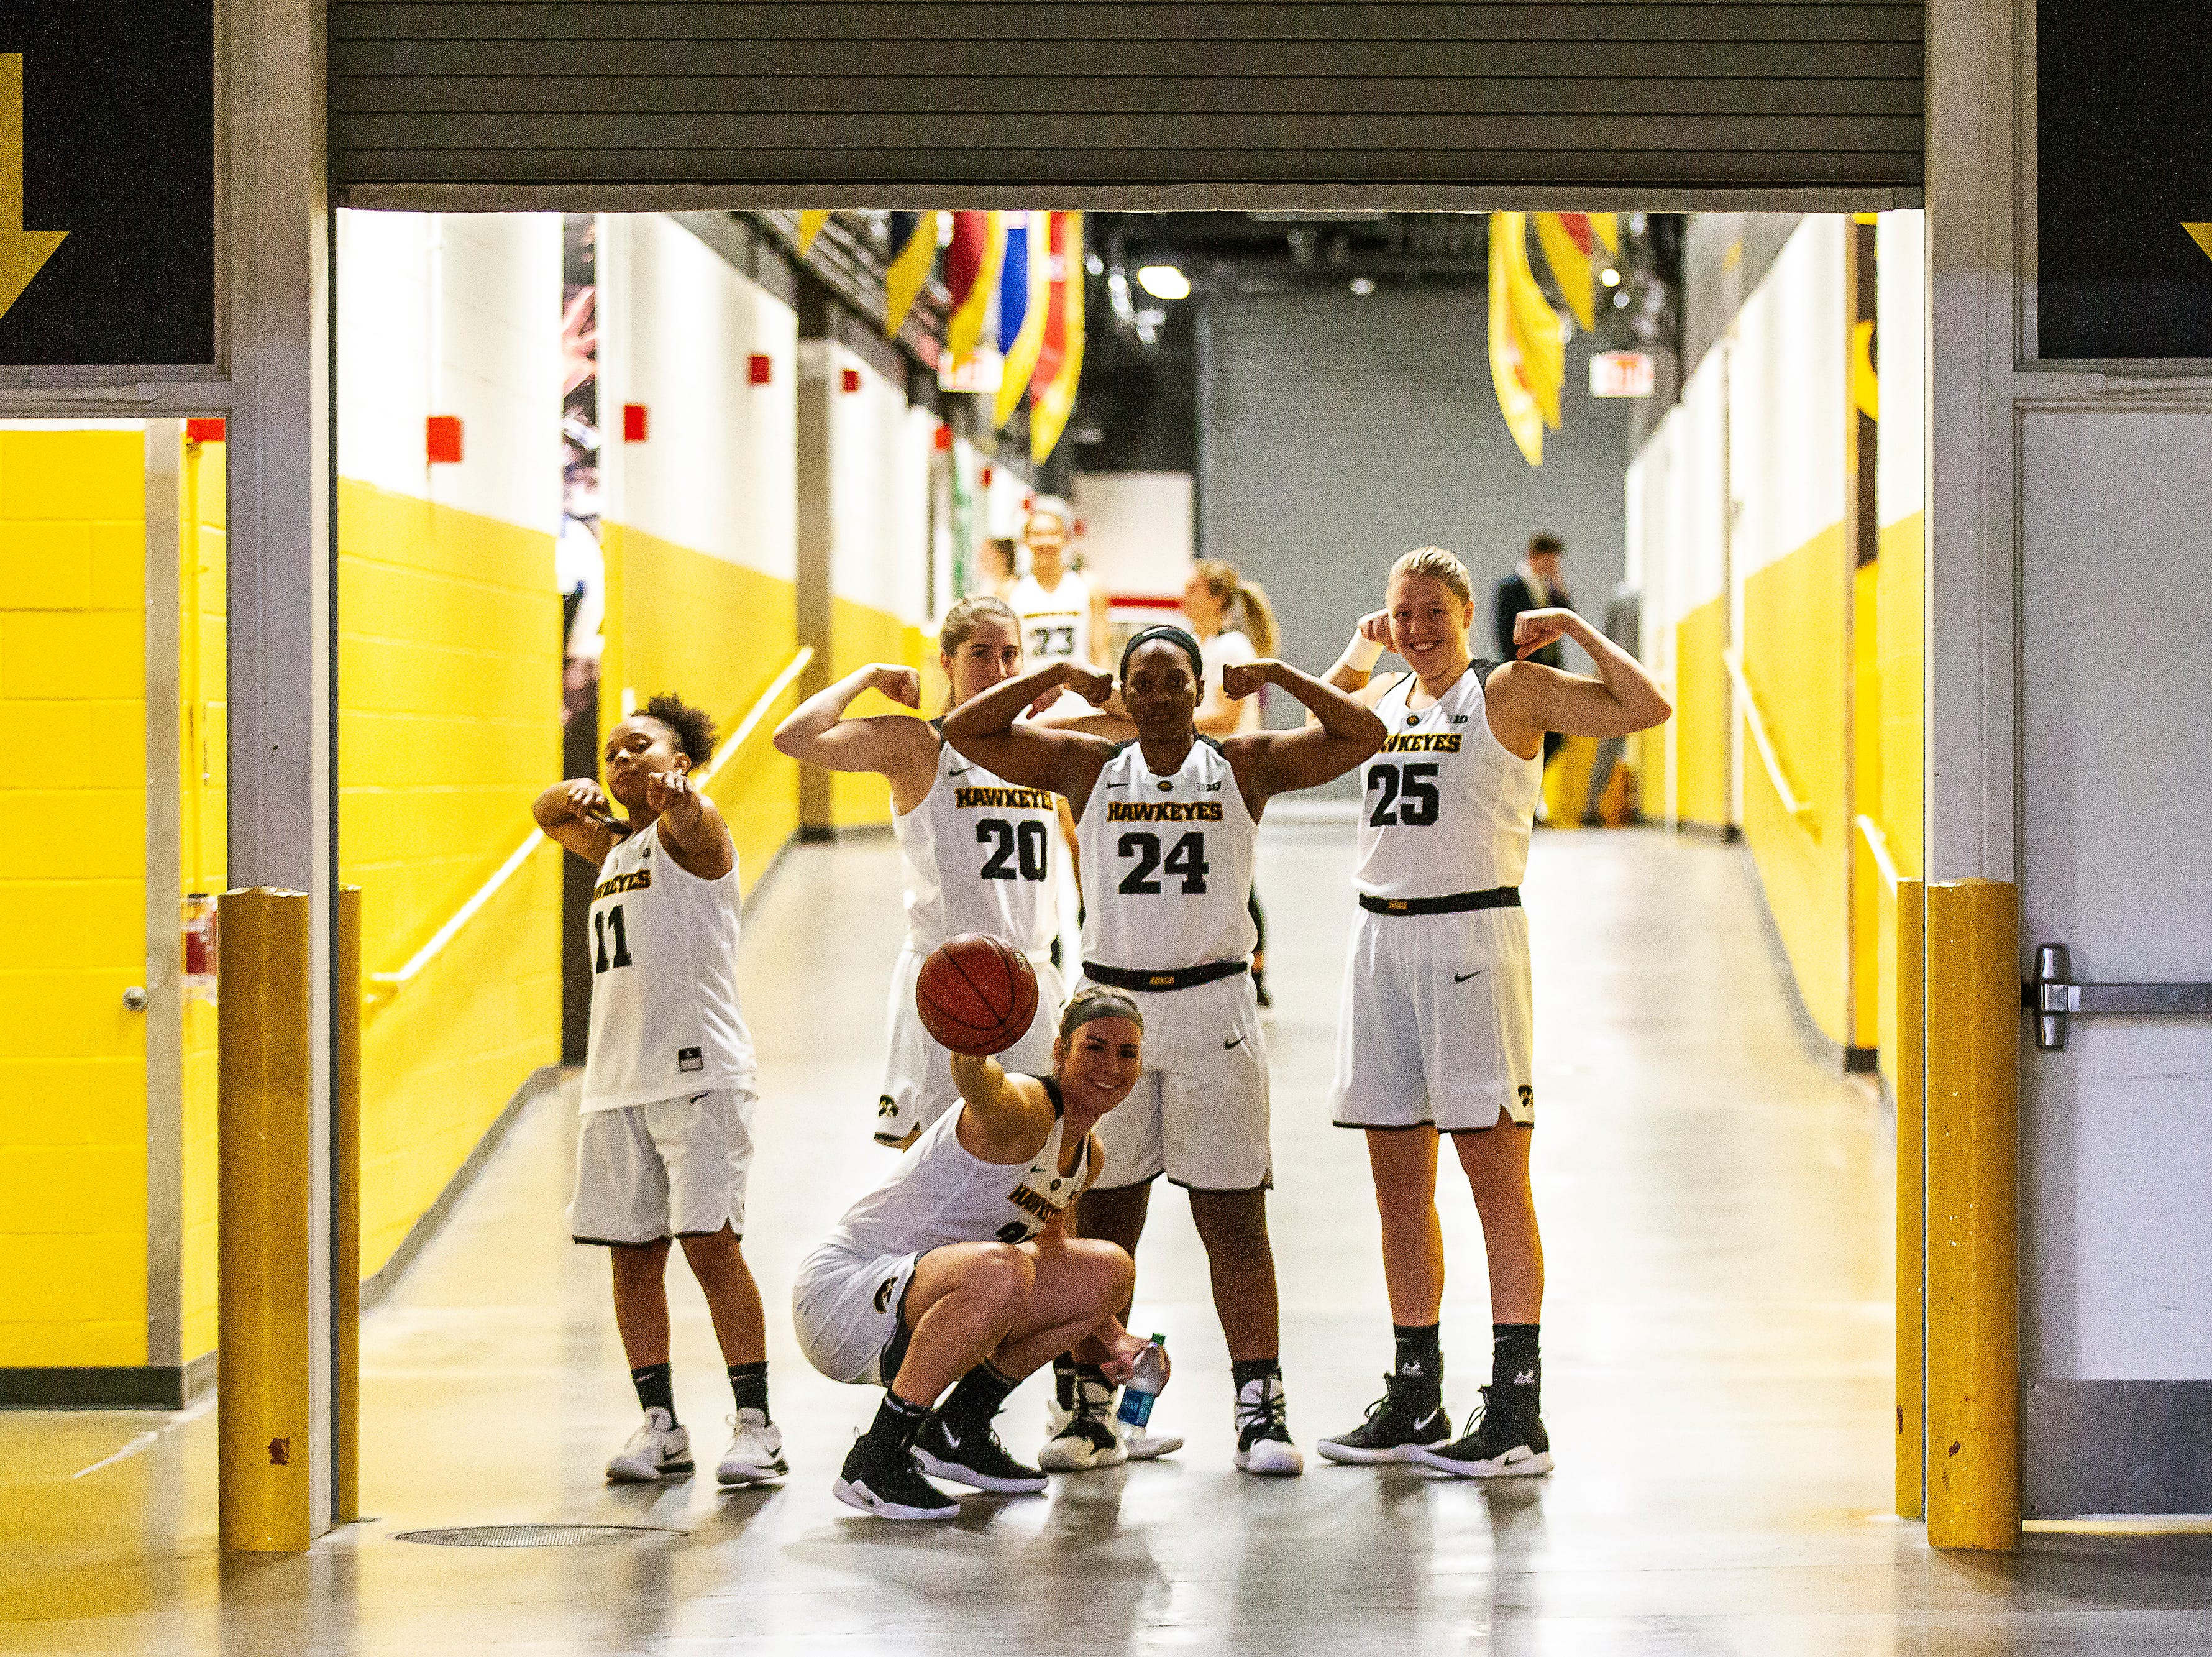 Iowa's Tania Davis (11) Kate Martin (20) Zion Sanders (24) Monika Czinano (25) and Hannah Stewart (21) pose for a photo in the tunnel during Hawkeye women's basketball media day on Wednesday, Oct. 31, 2018, at Carver-Hawkeye Arena in Iowa City.